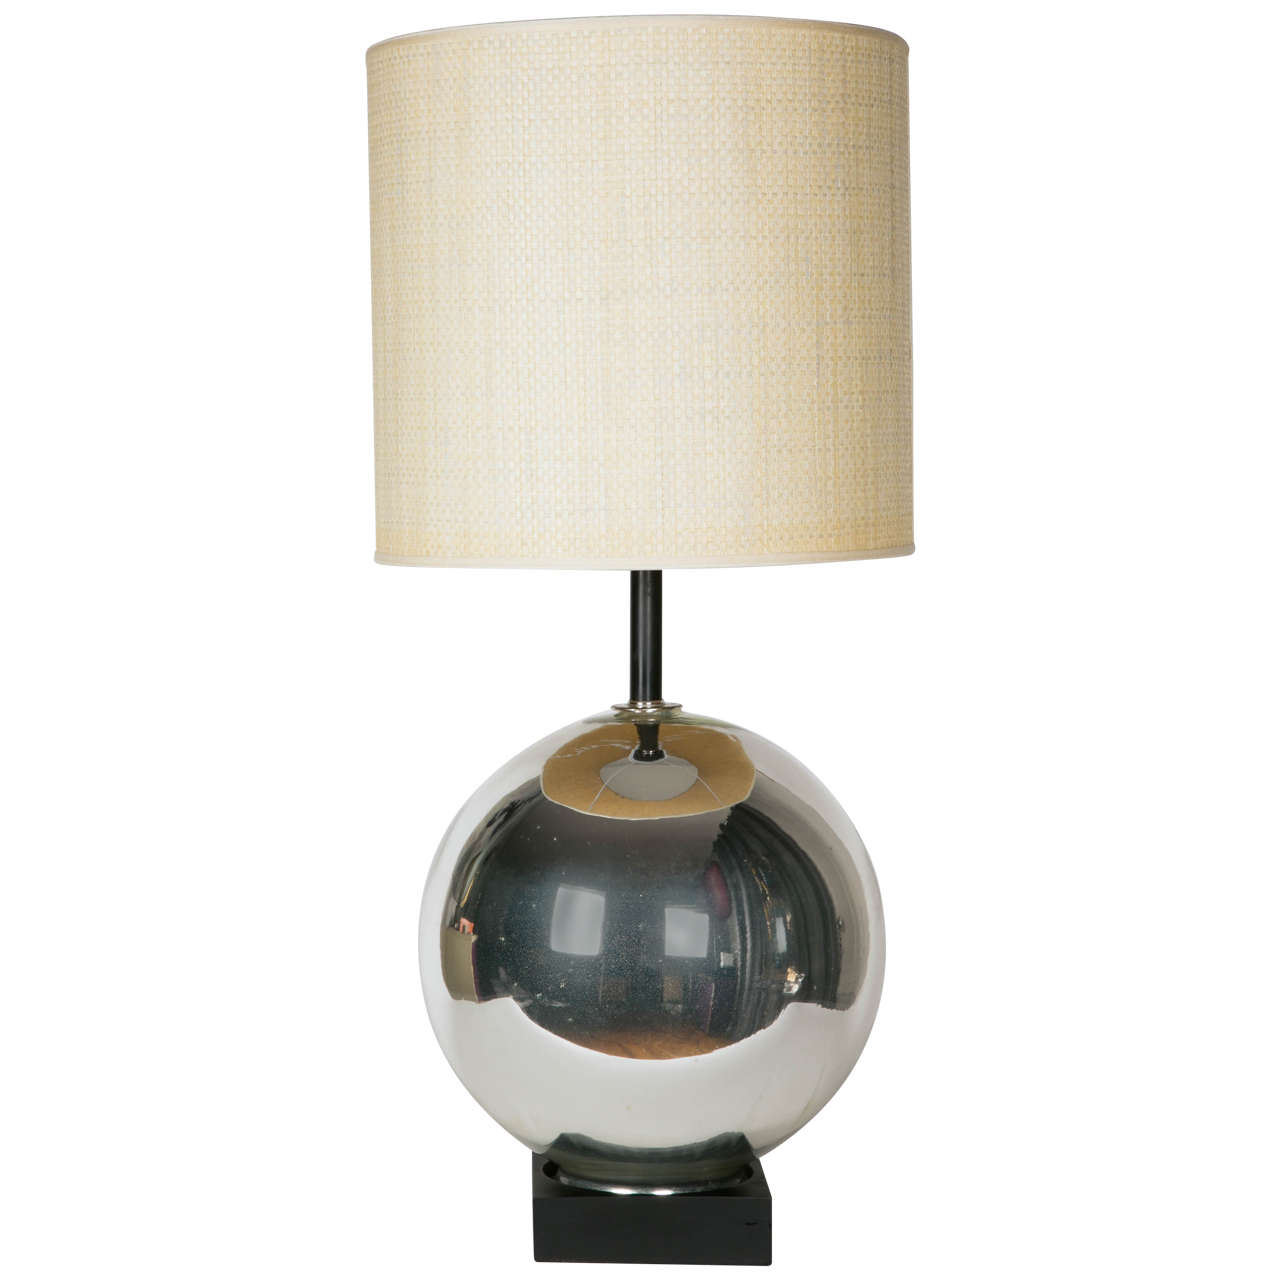 this 1930s mercury glass table lamp is no longer available. Black Bedroom Furniture Sets. Home Design Ideas